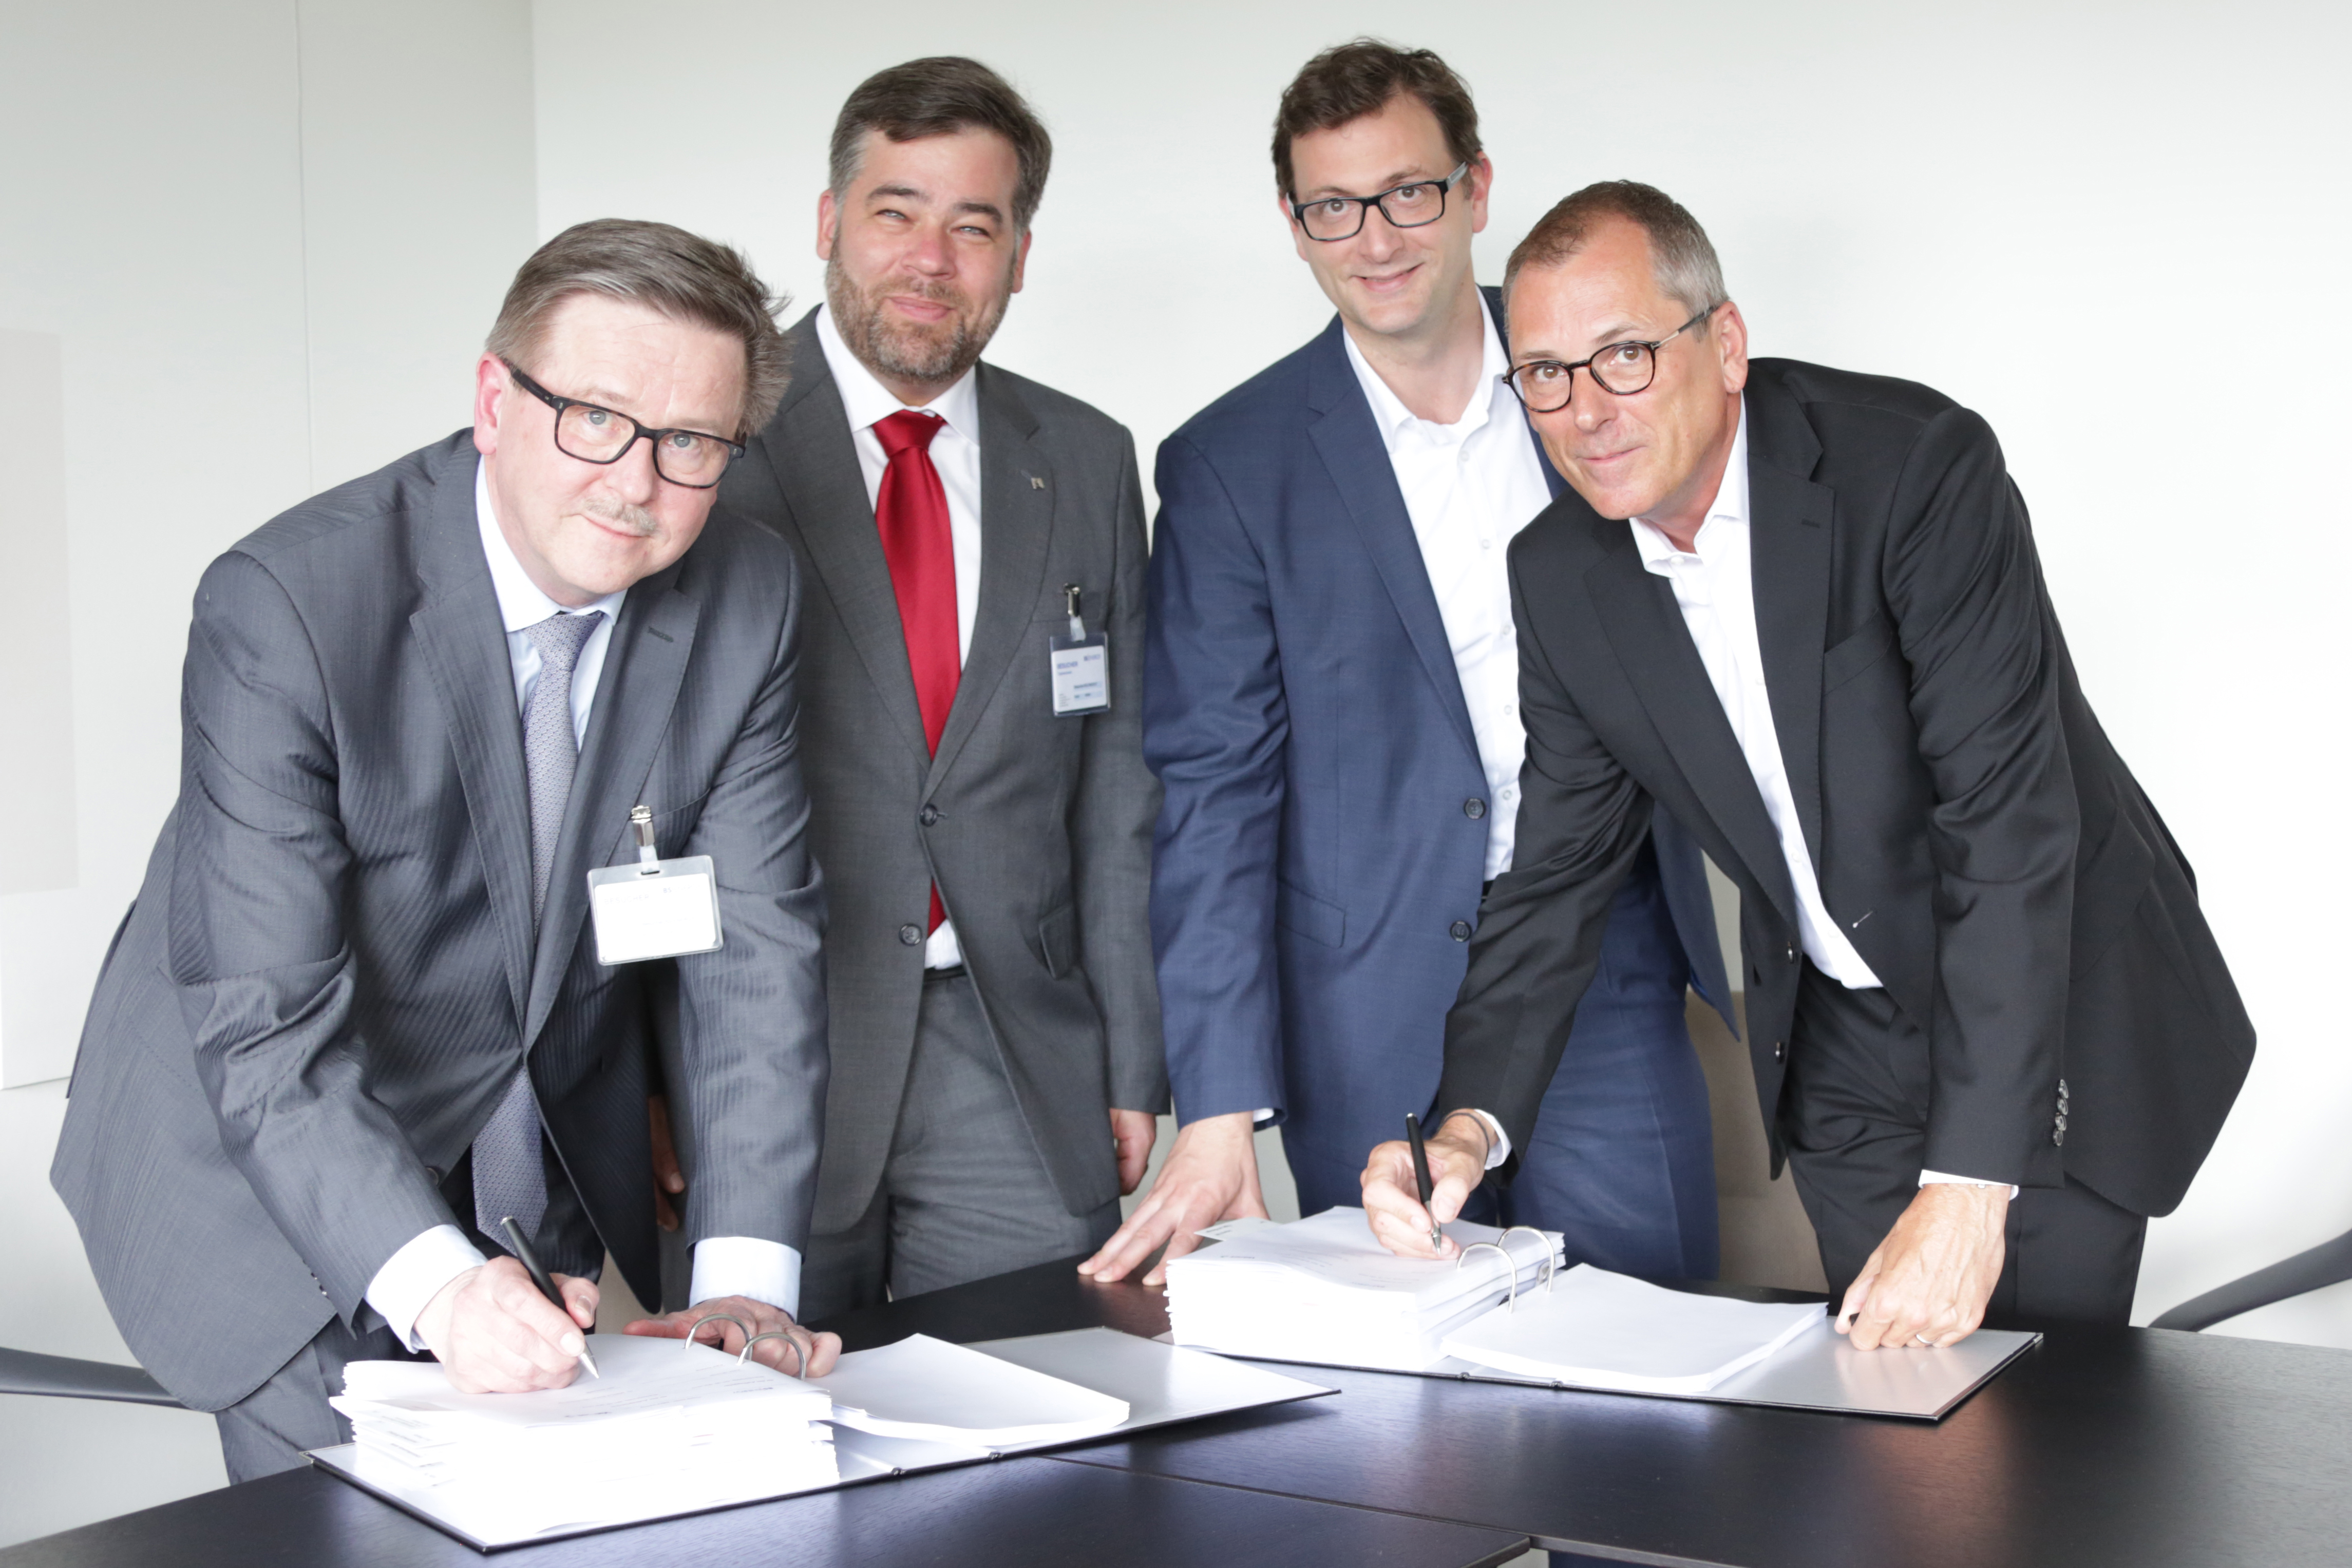 Valmet will supply a biomass-fired boiler and a flue gas treatment plant to BS Energy's combined heat and power (CHP) plant in Braunschweig, Germany.